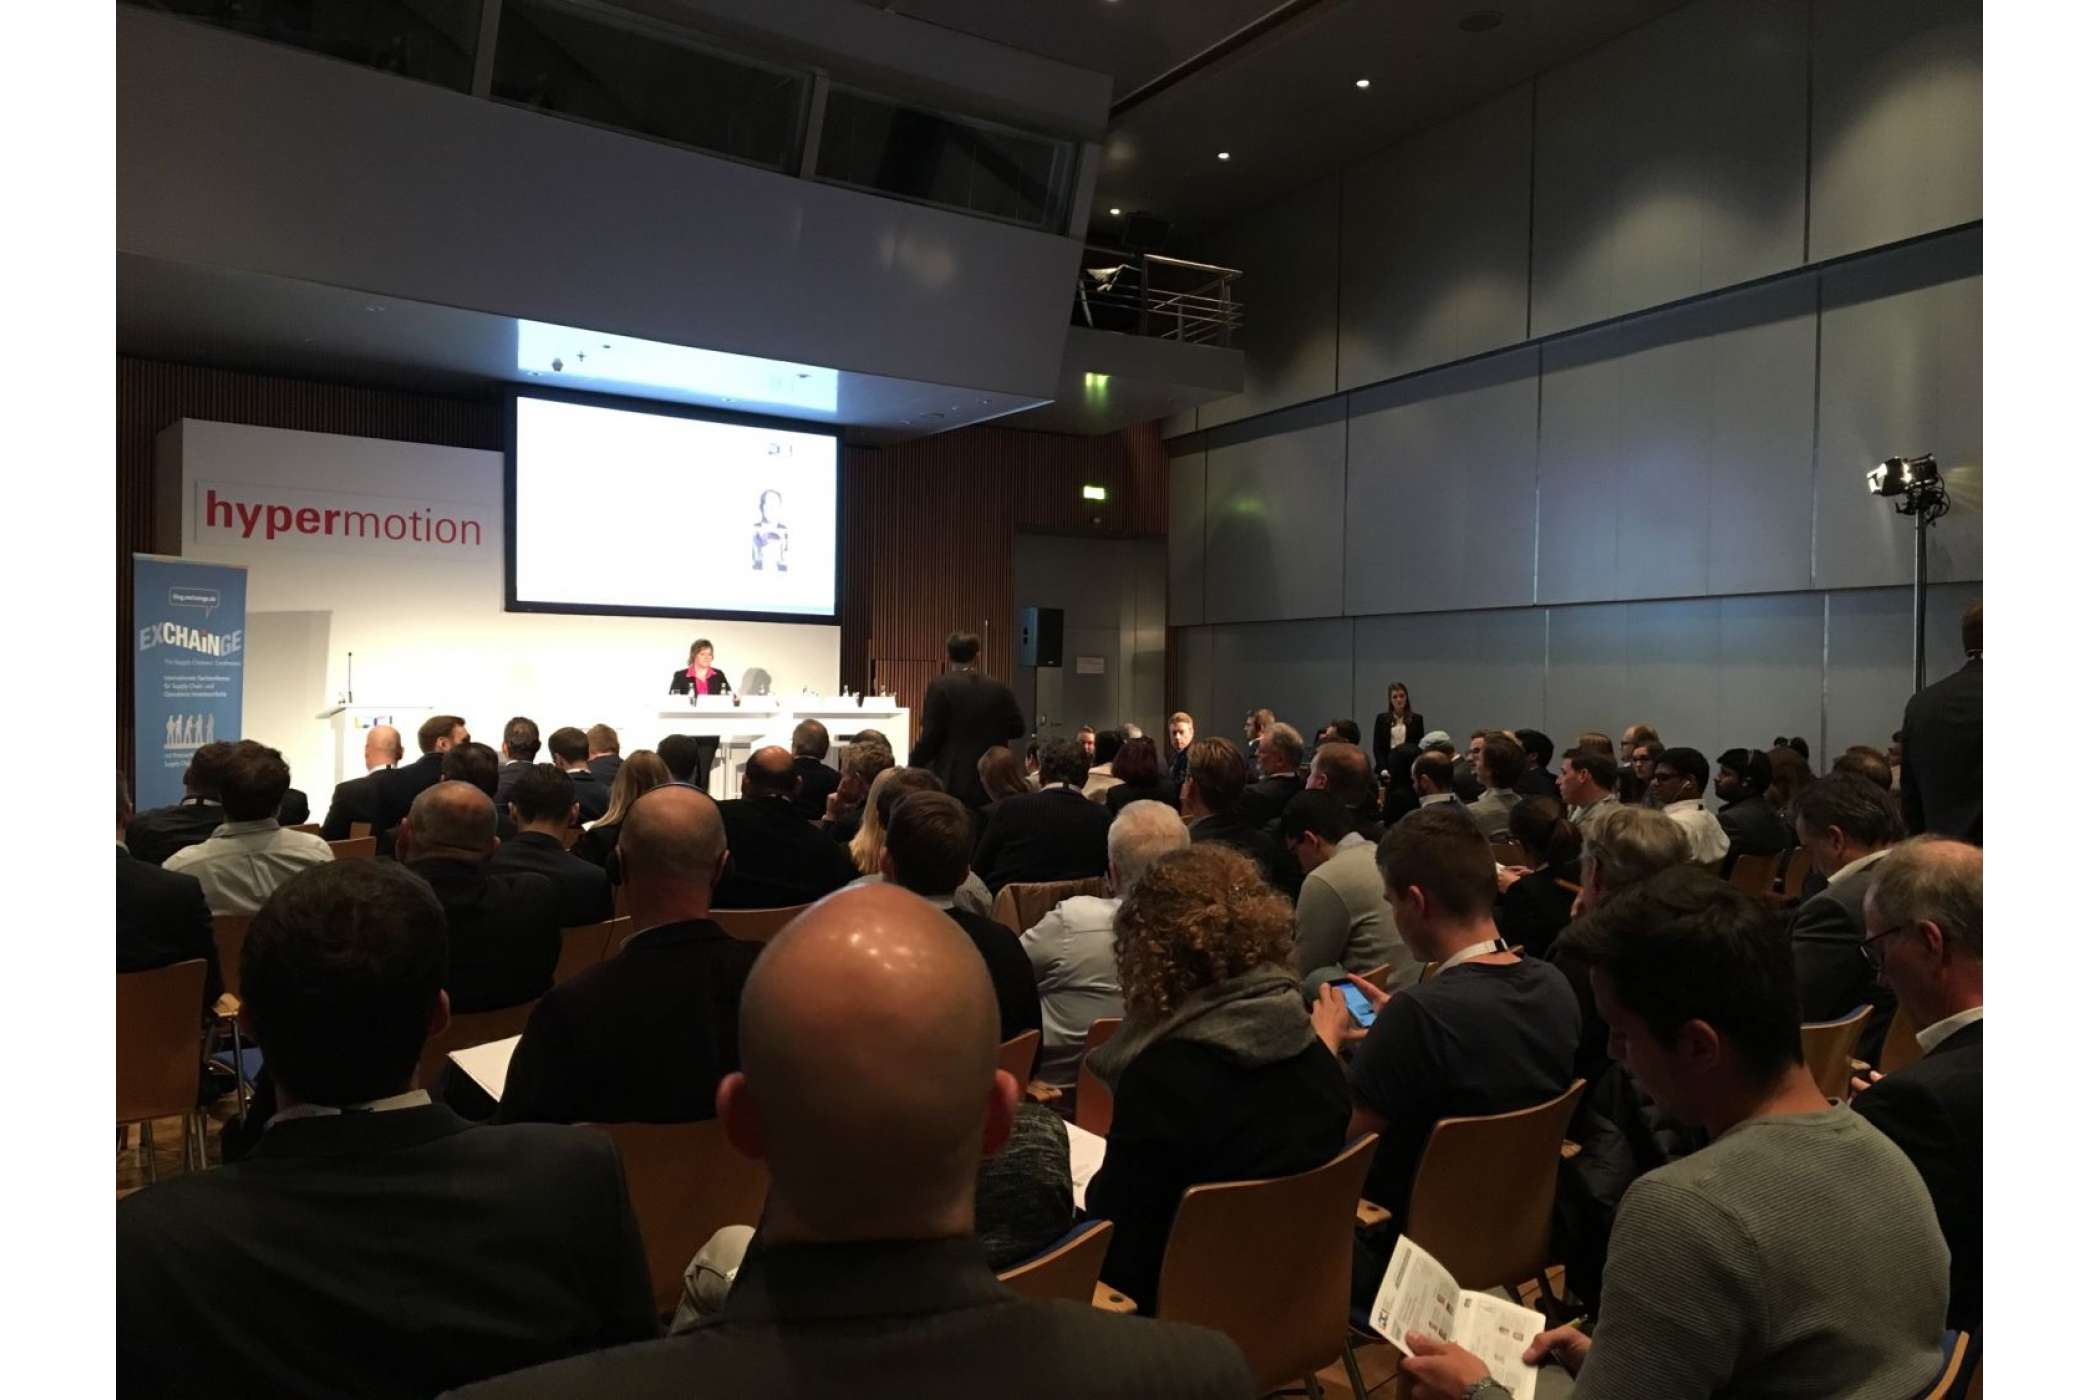 Gut besucht: Blick in den Saal der Logistics Digital Conference.Messe Frankfurt